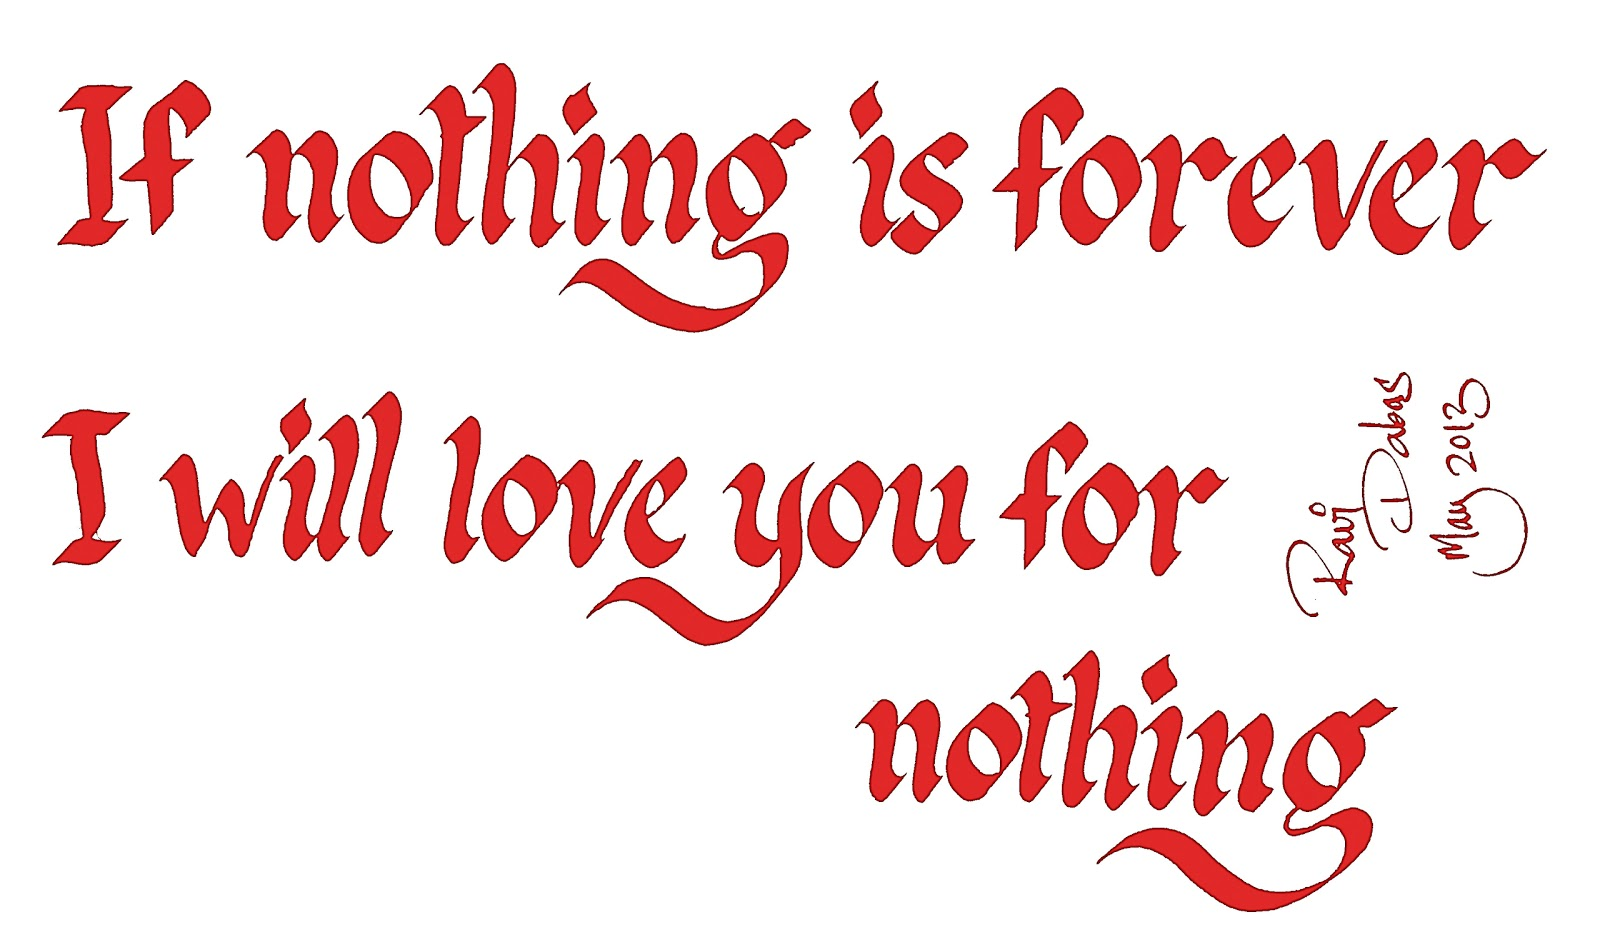 Nothing Is Forever Quotes. QuotesGram